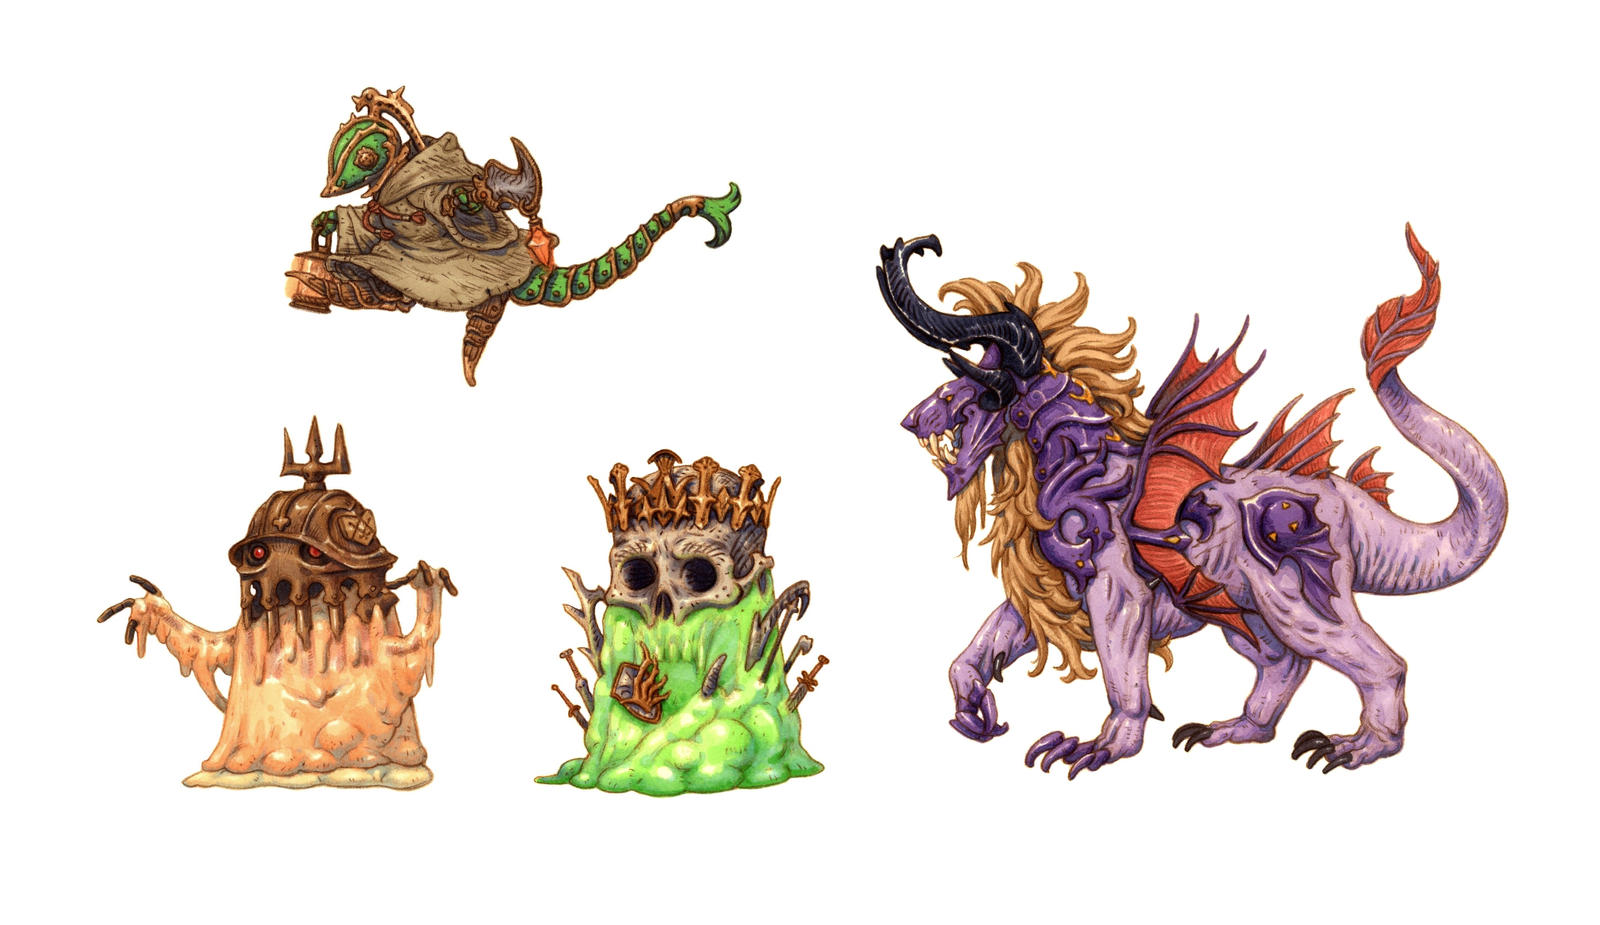 Final Fantasy monsters by eoghankerrigan